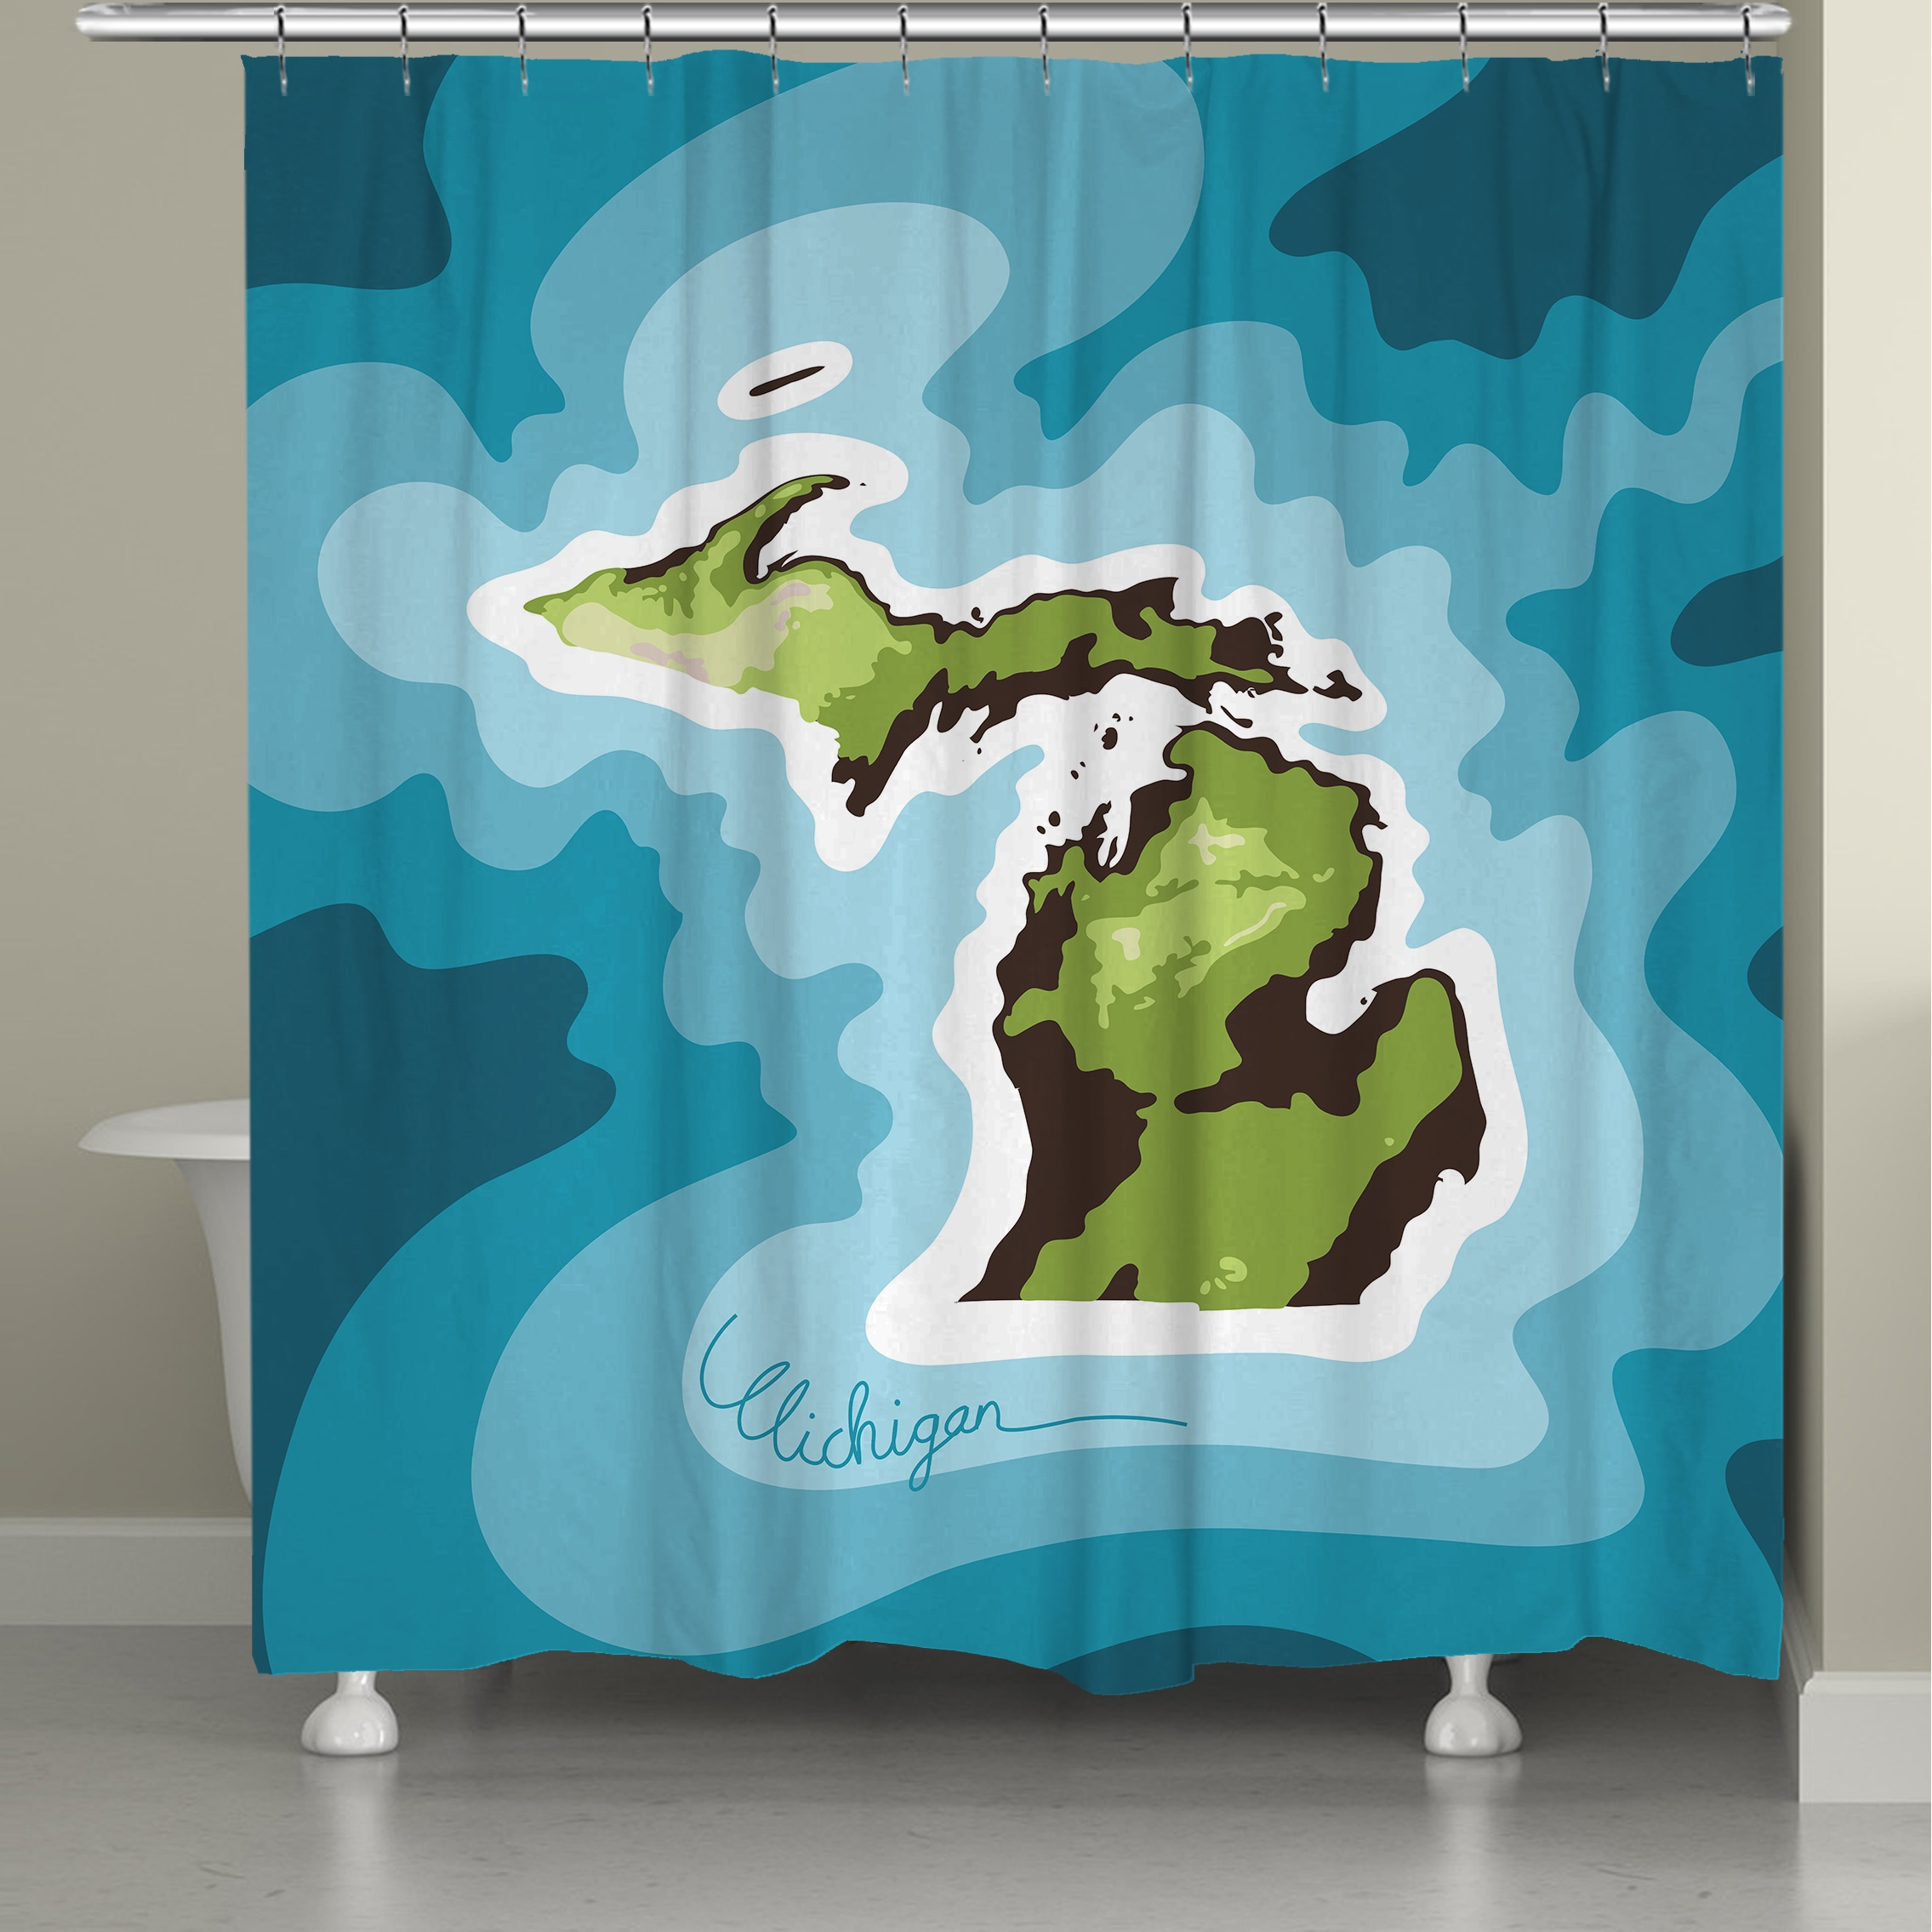 Shop Laural Home Michigan Topographic Abstract Map Shower Curtain 71x74